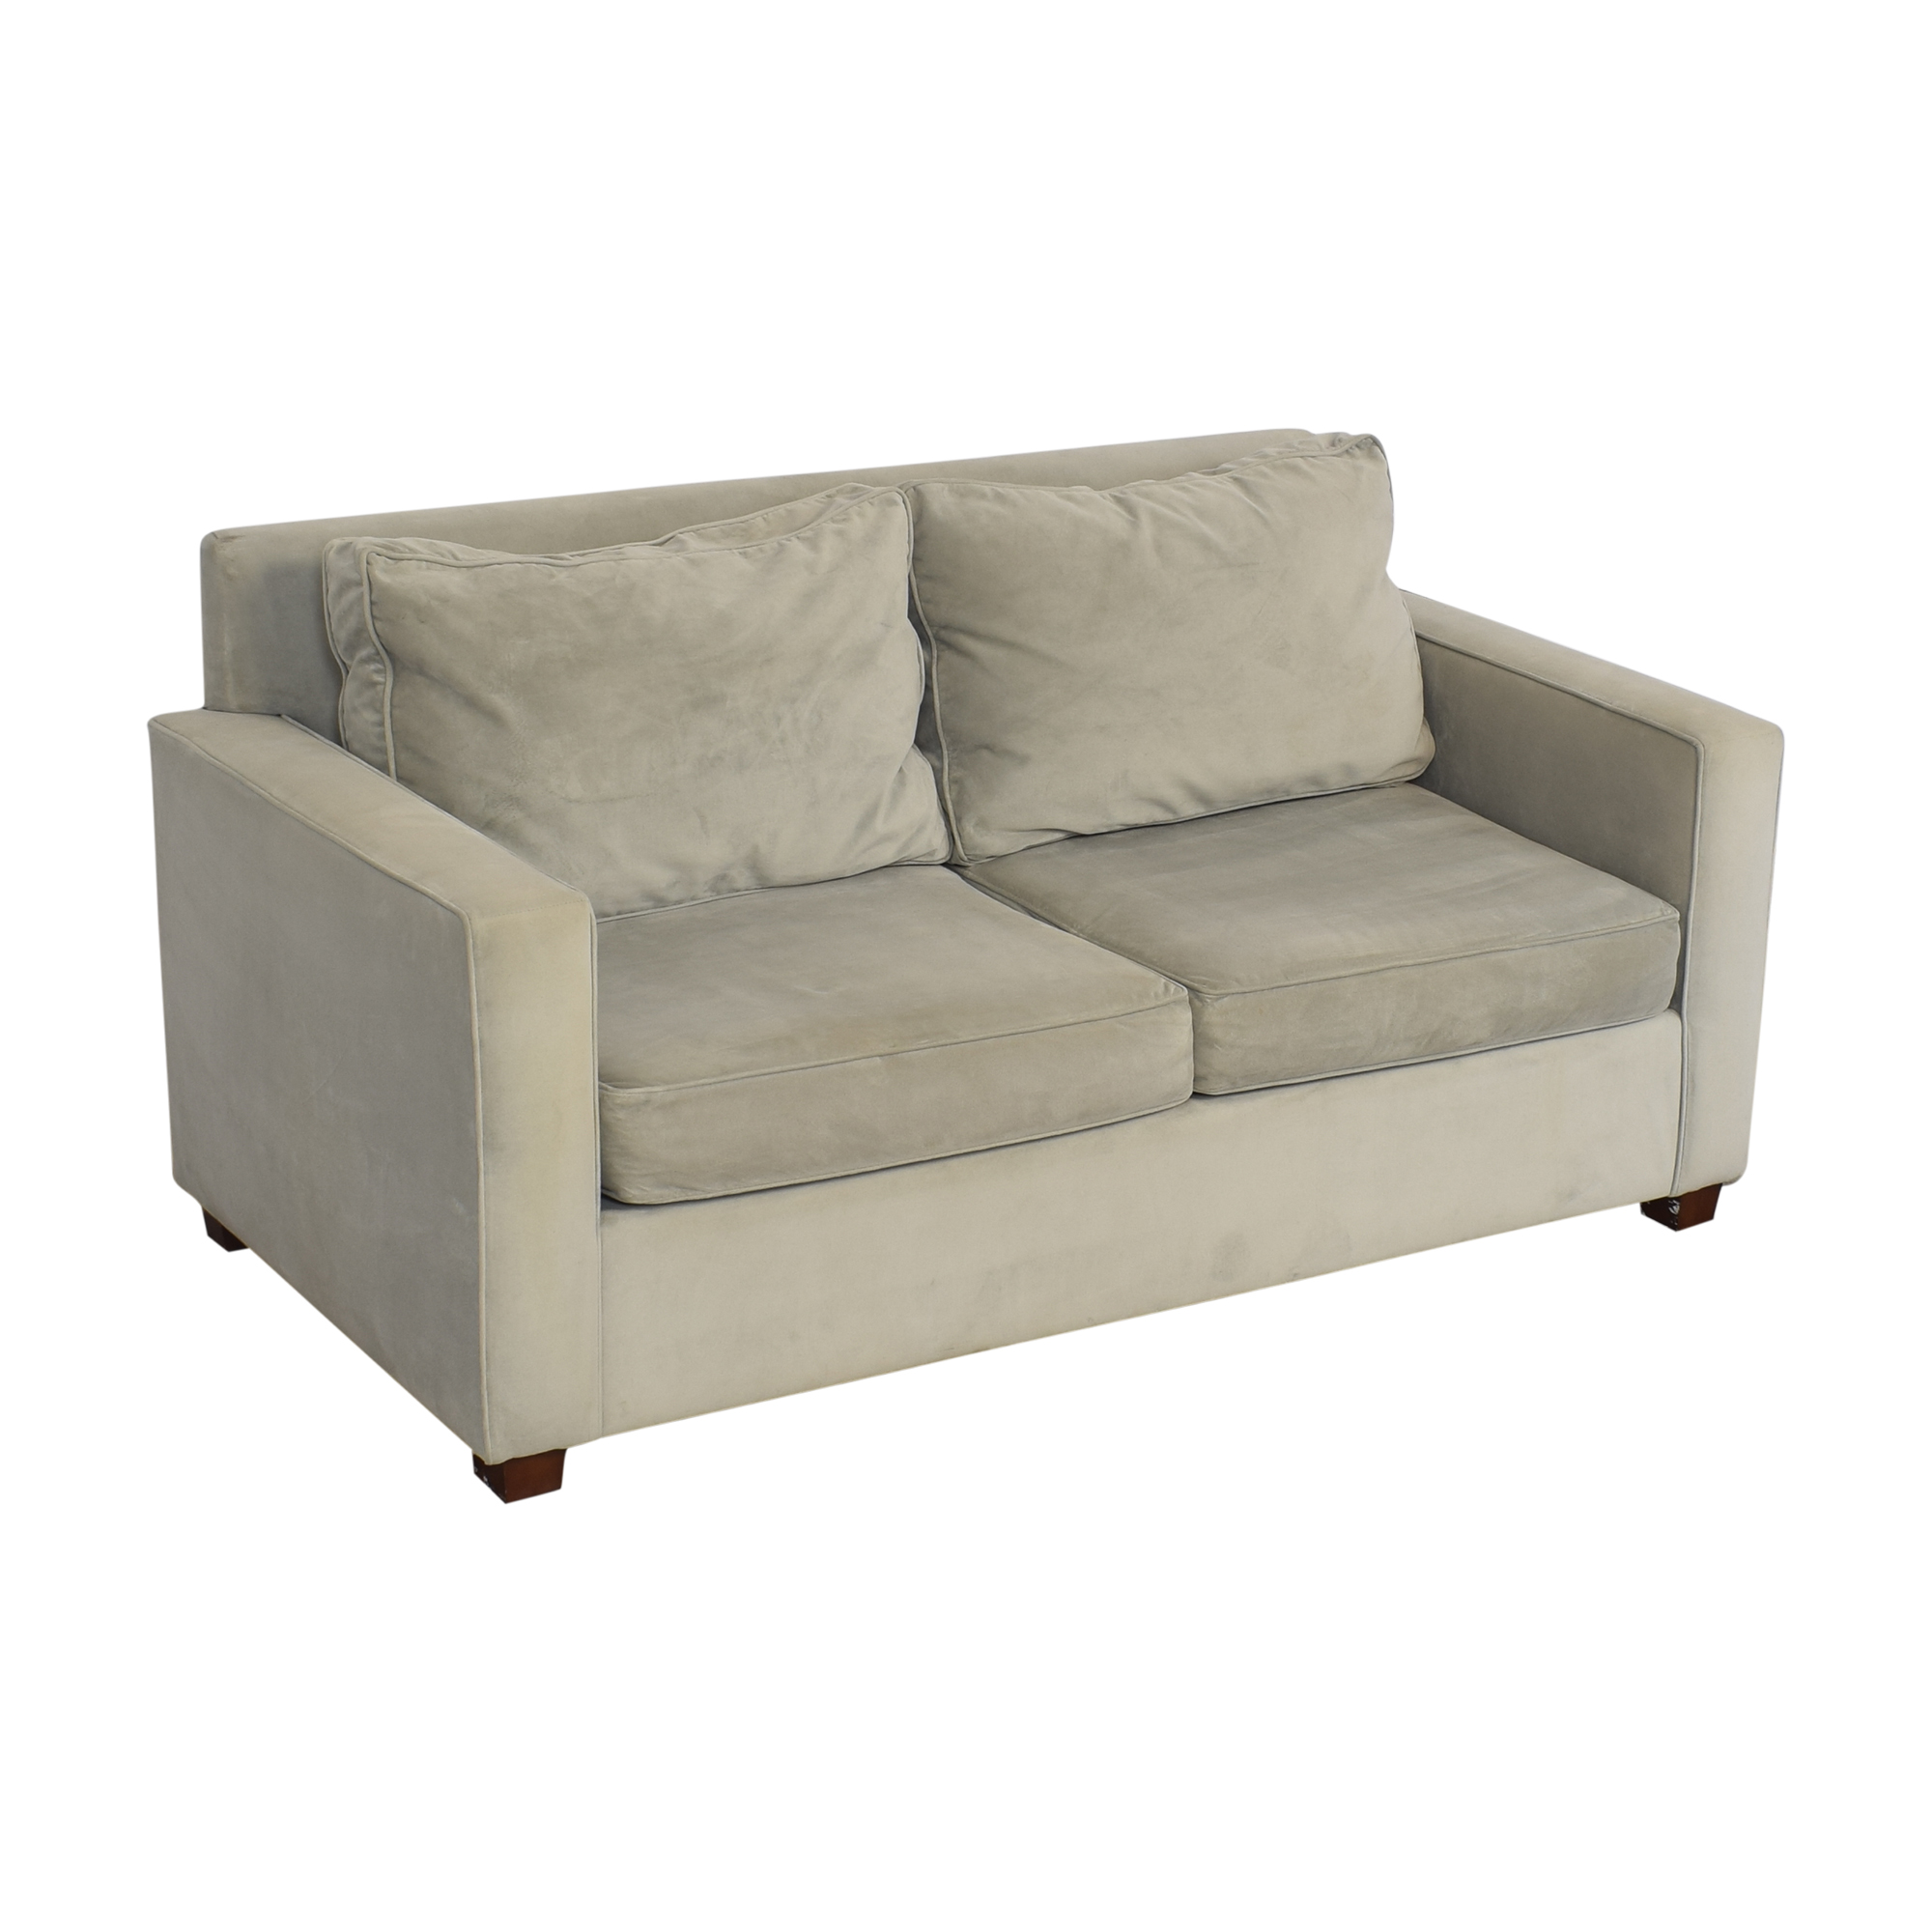 West Elm Loveseat / Loveseats